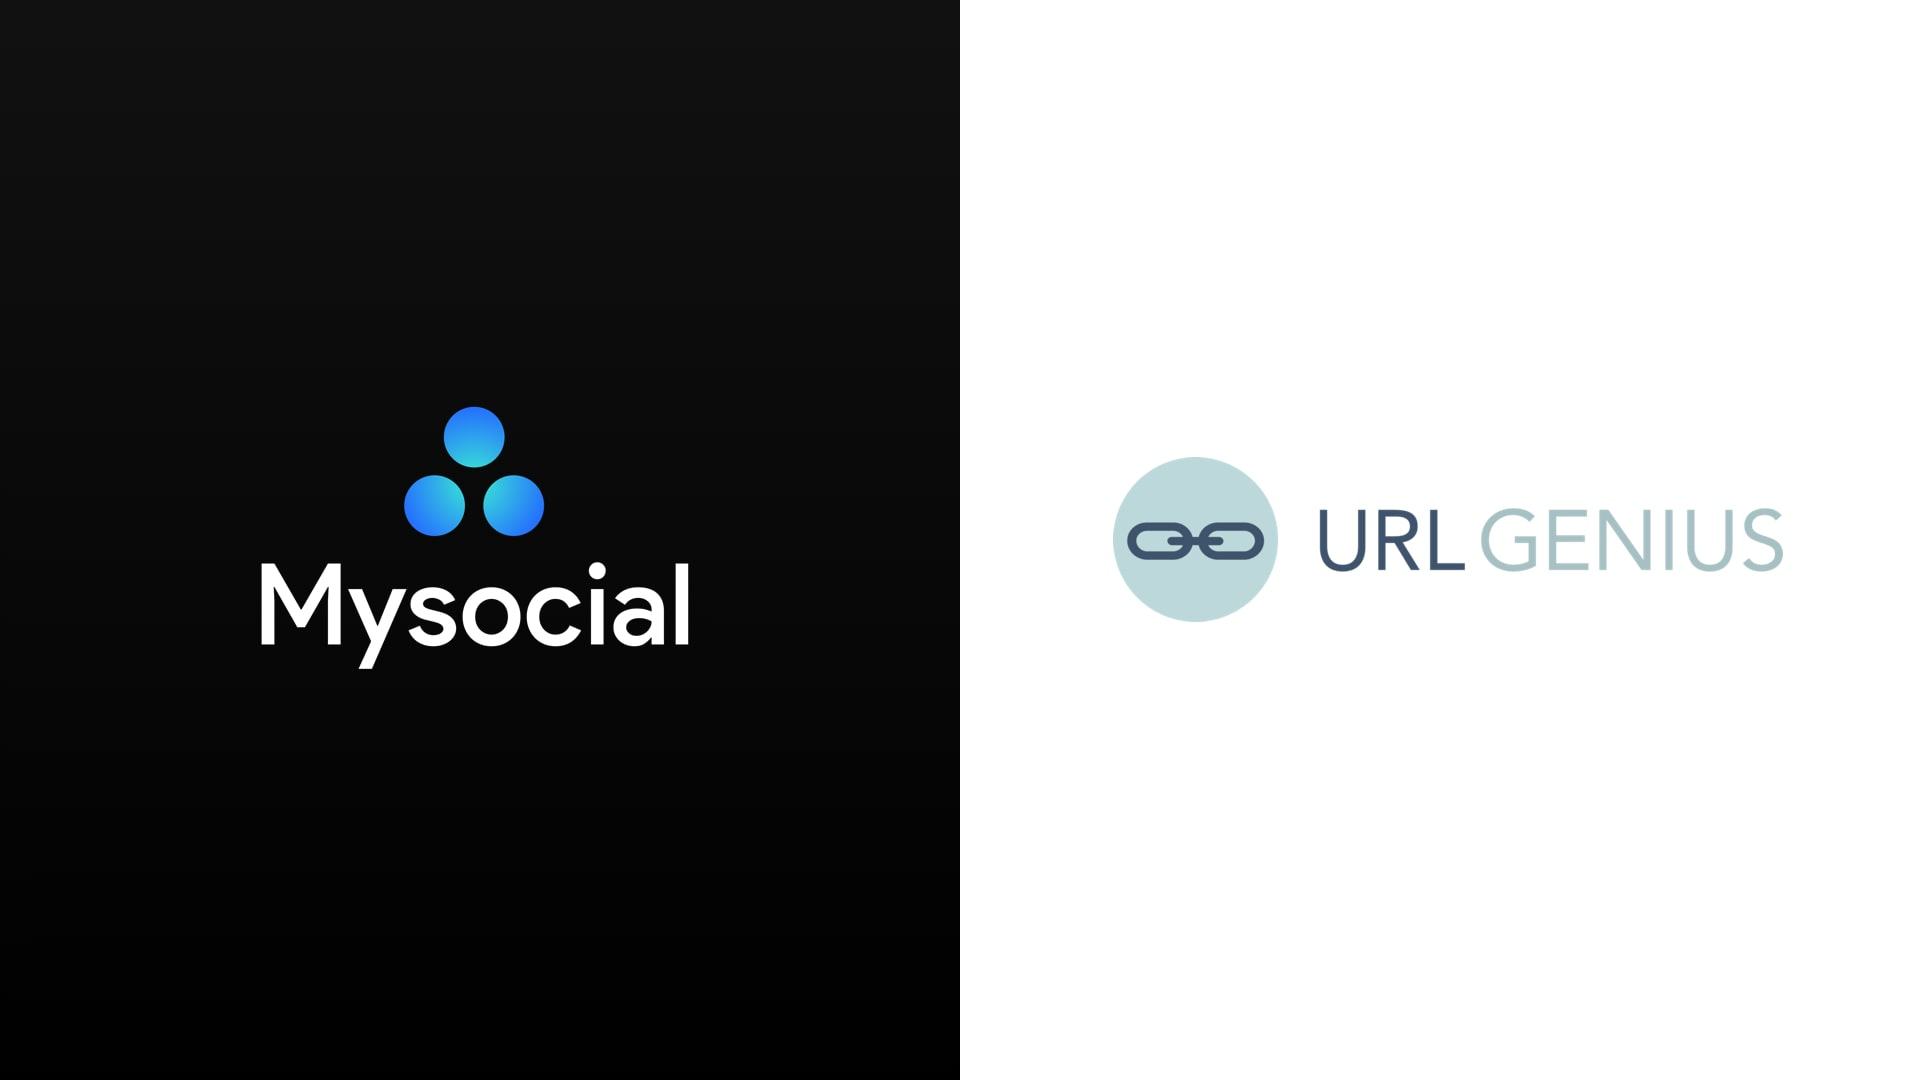 Free urlgenius alternative - Mysocial Smartlink